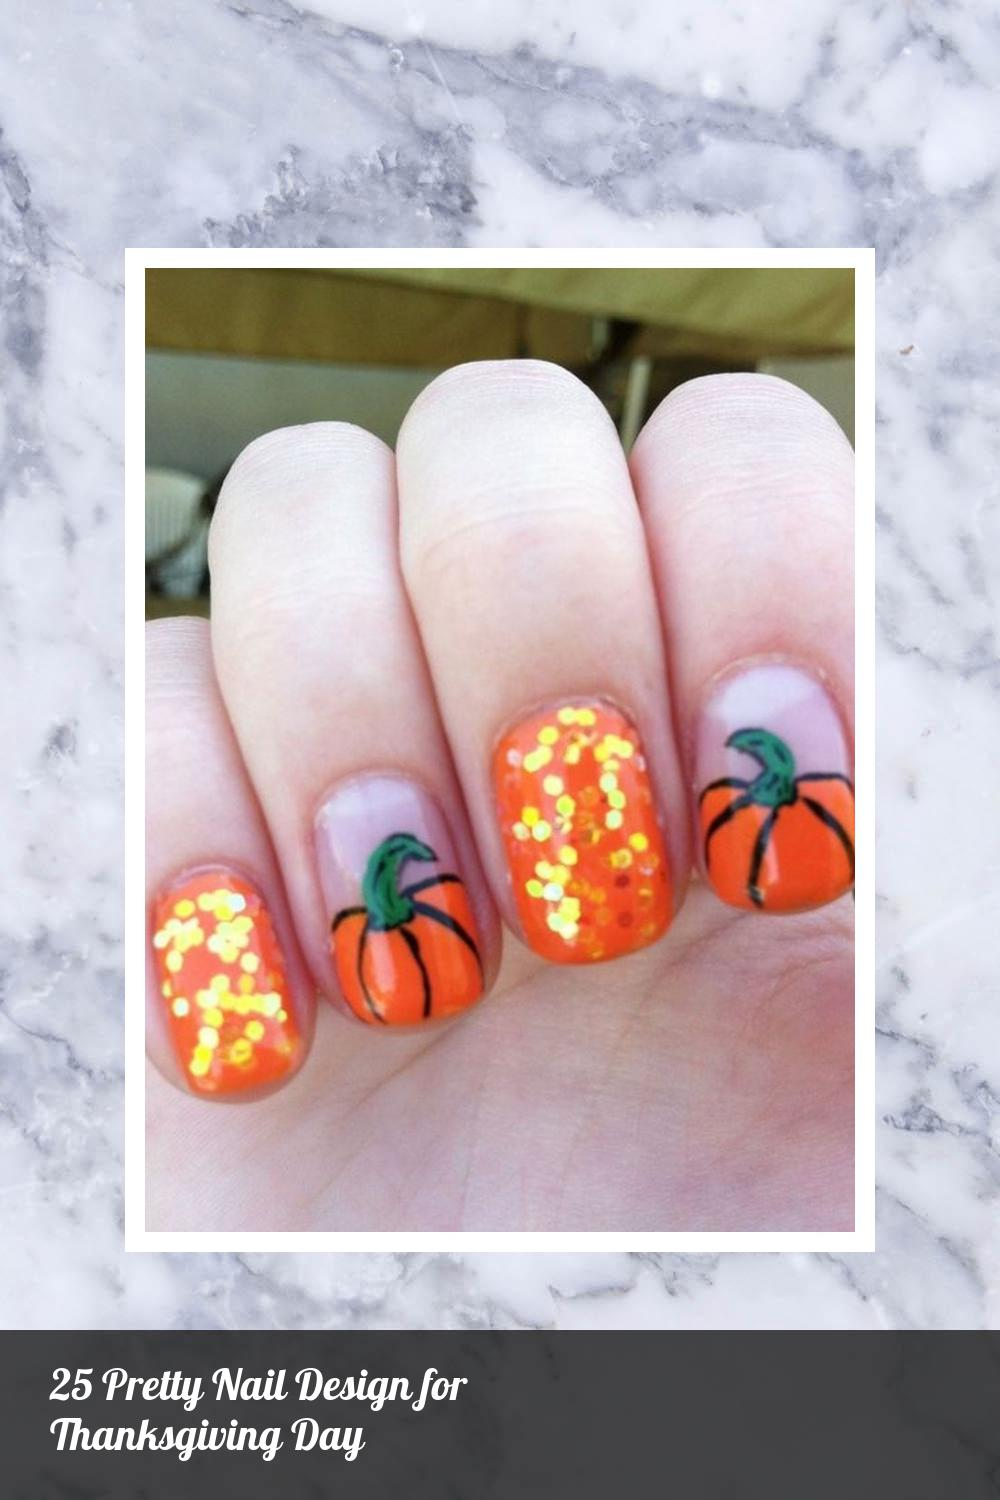 25 Pretty Nail Design for Thanksgiving Day 12